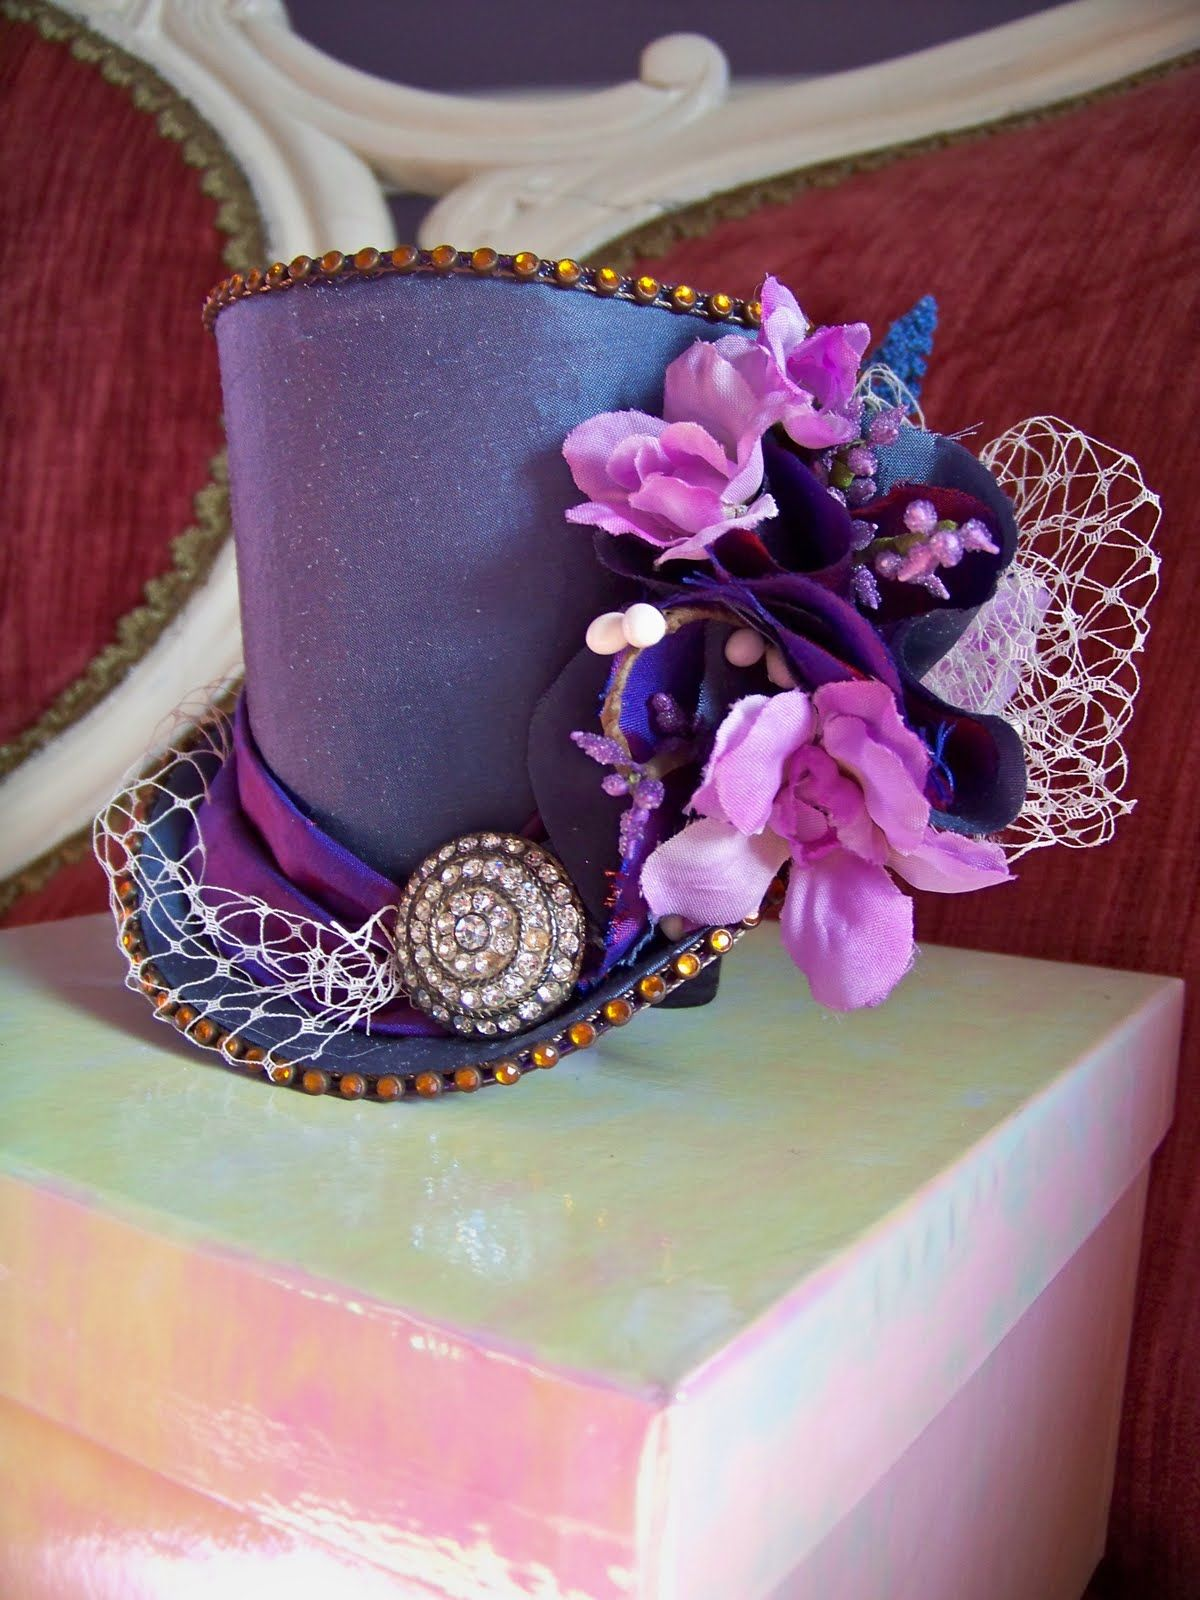 Image result for top hat with flowers | CHRISTMAS DECOR | Pinterest ...